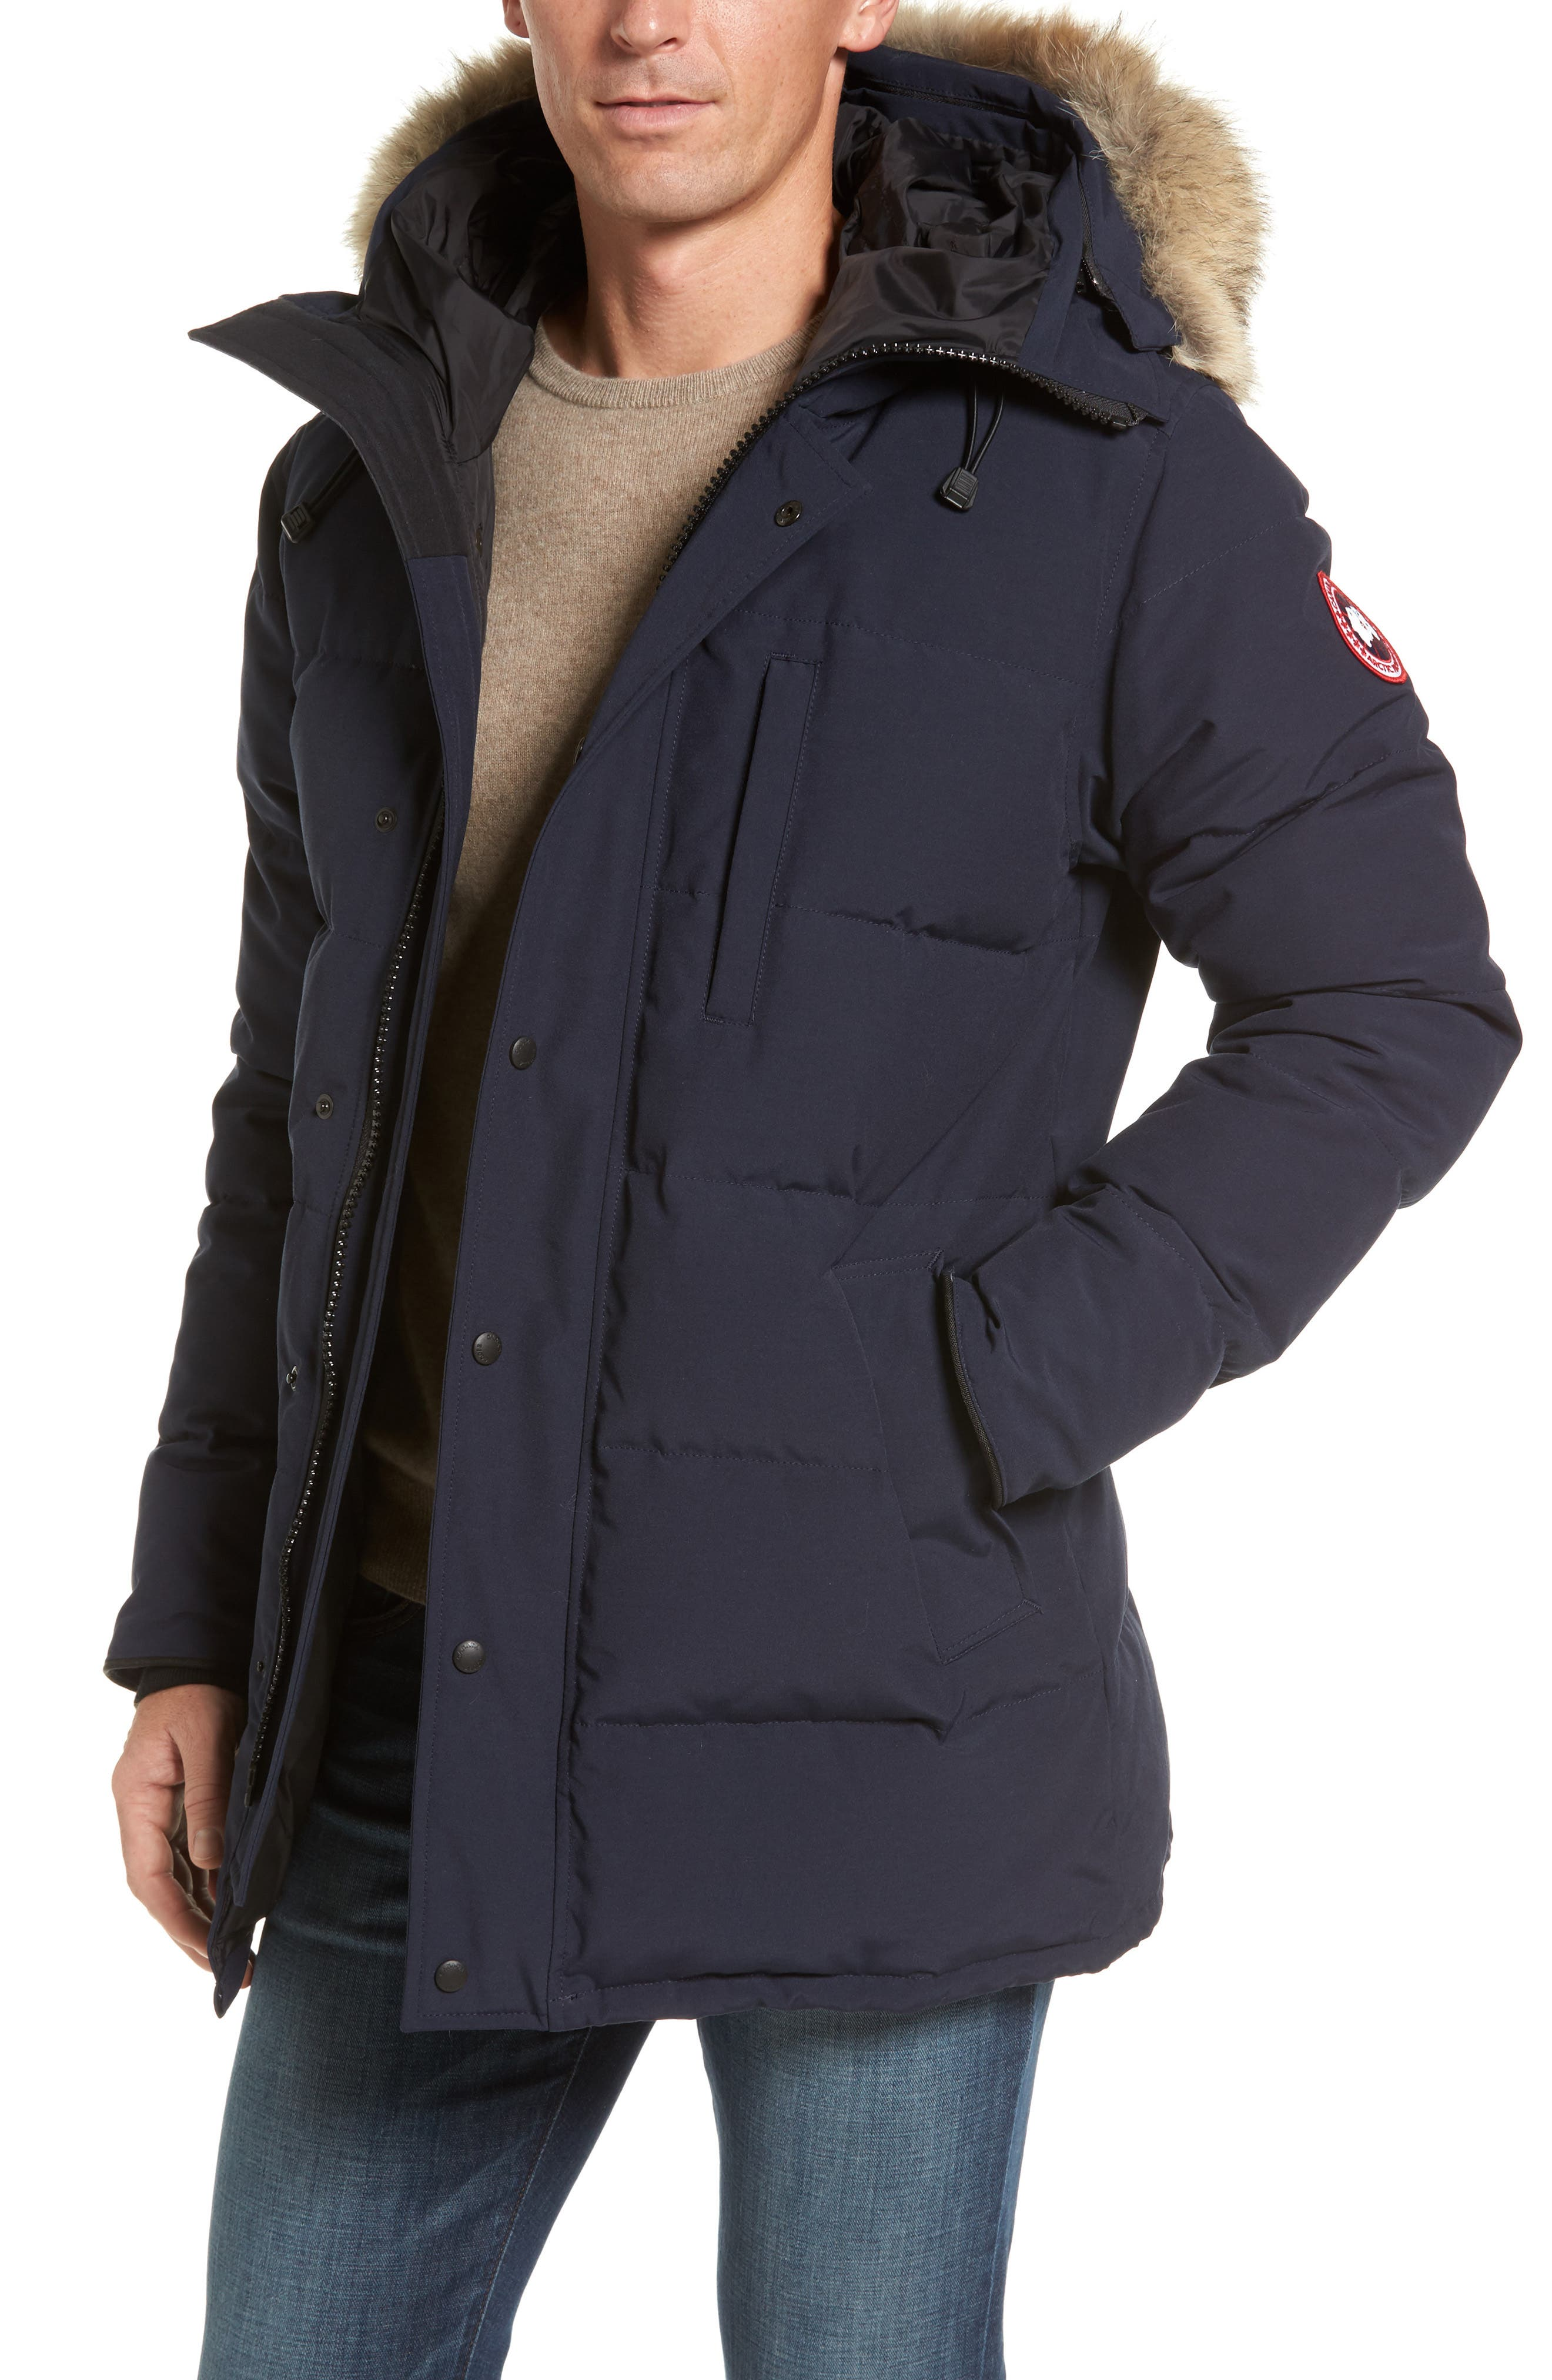 Alternate Image 1 Selected - Canada Goose 'Carson' Slim Fit Hooded Packable Parka with Genuine Coyote Fur Trim